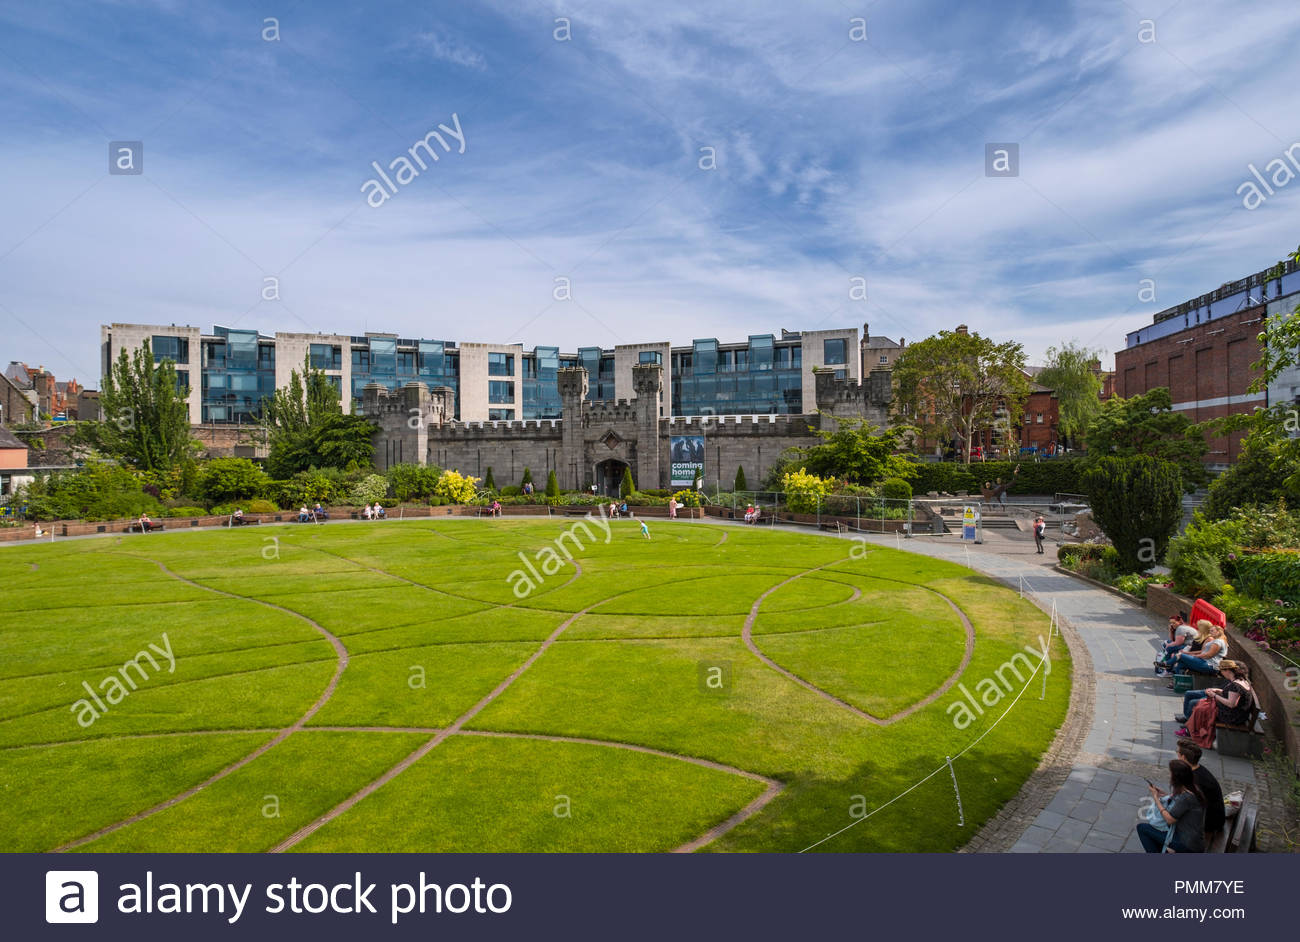 The Coach House with Dubh Linn Garden in the foreground, Dublin, Leinster, Ireland Stock Photo